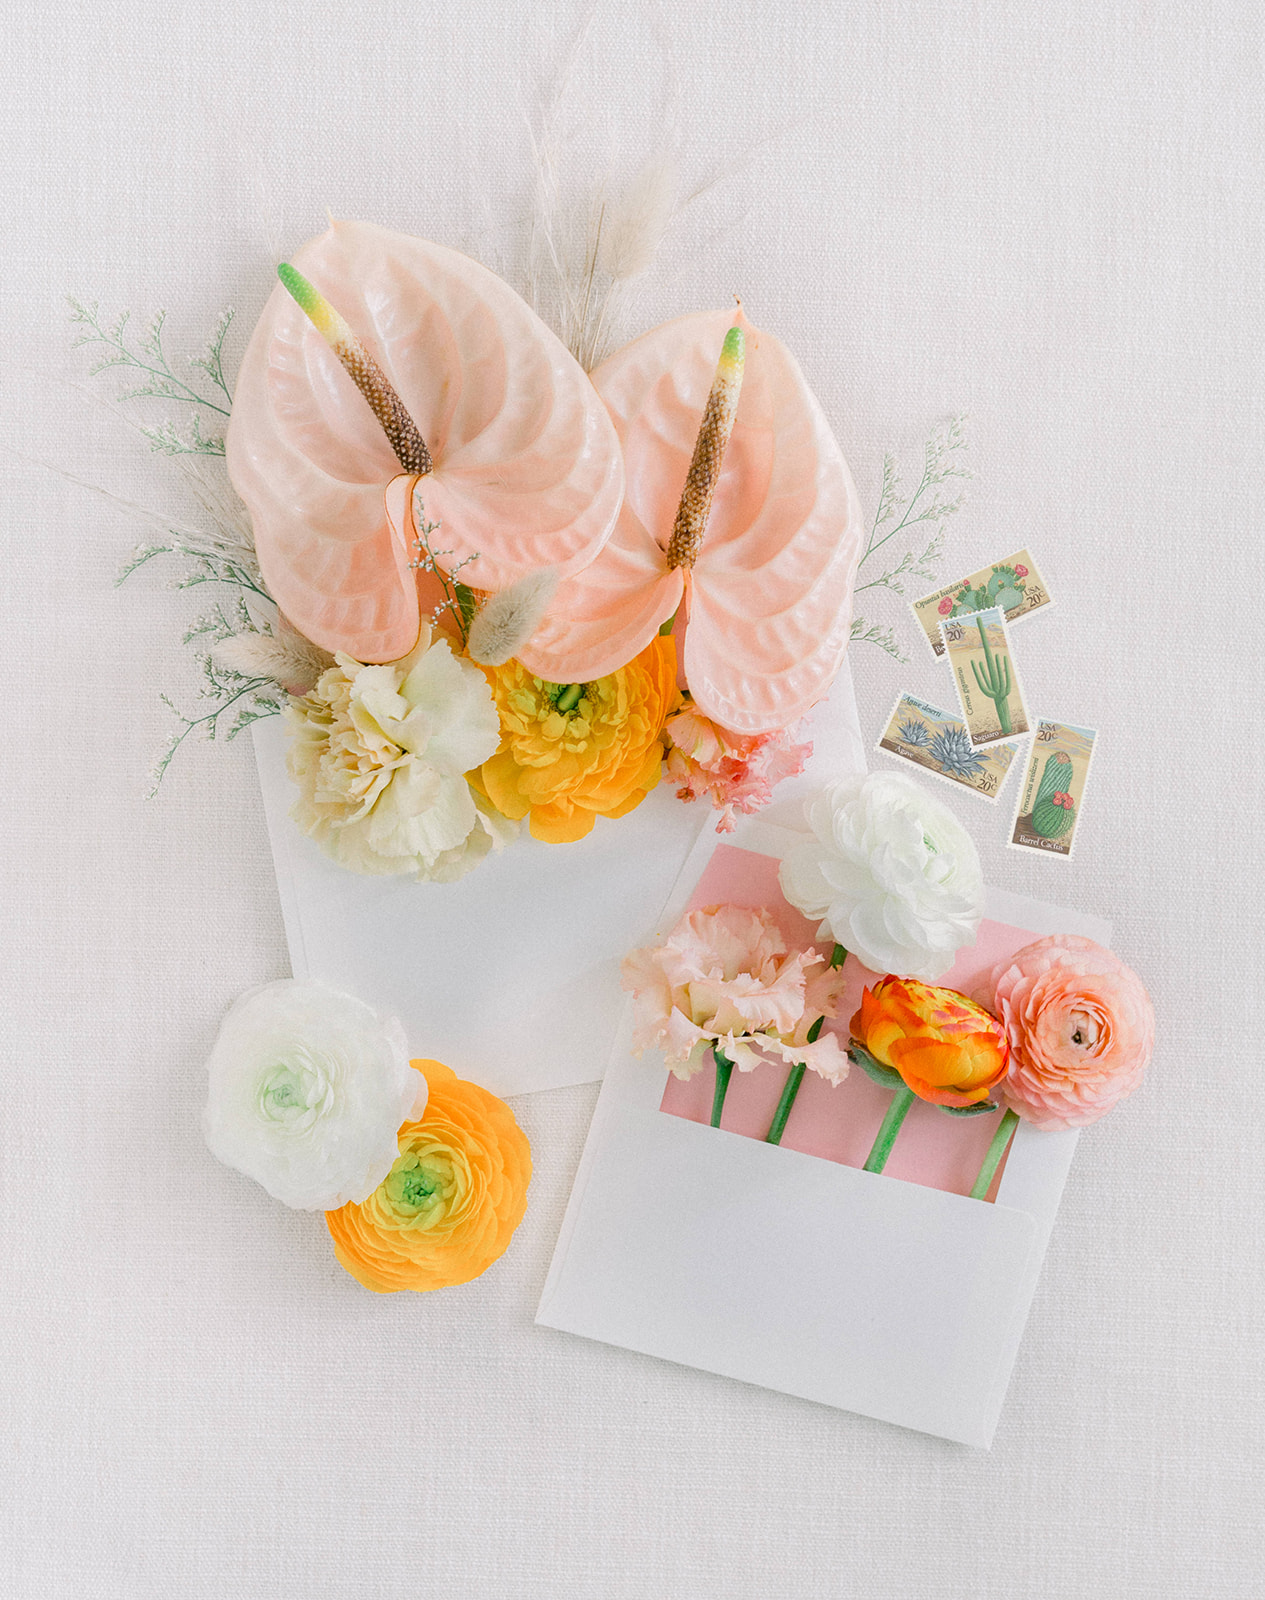 Colorful and bohemian wedding invitation suite by Lucky Day Events Co. x Our Story Creative